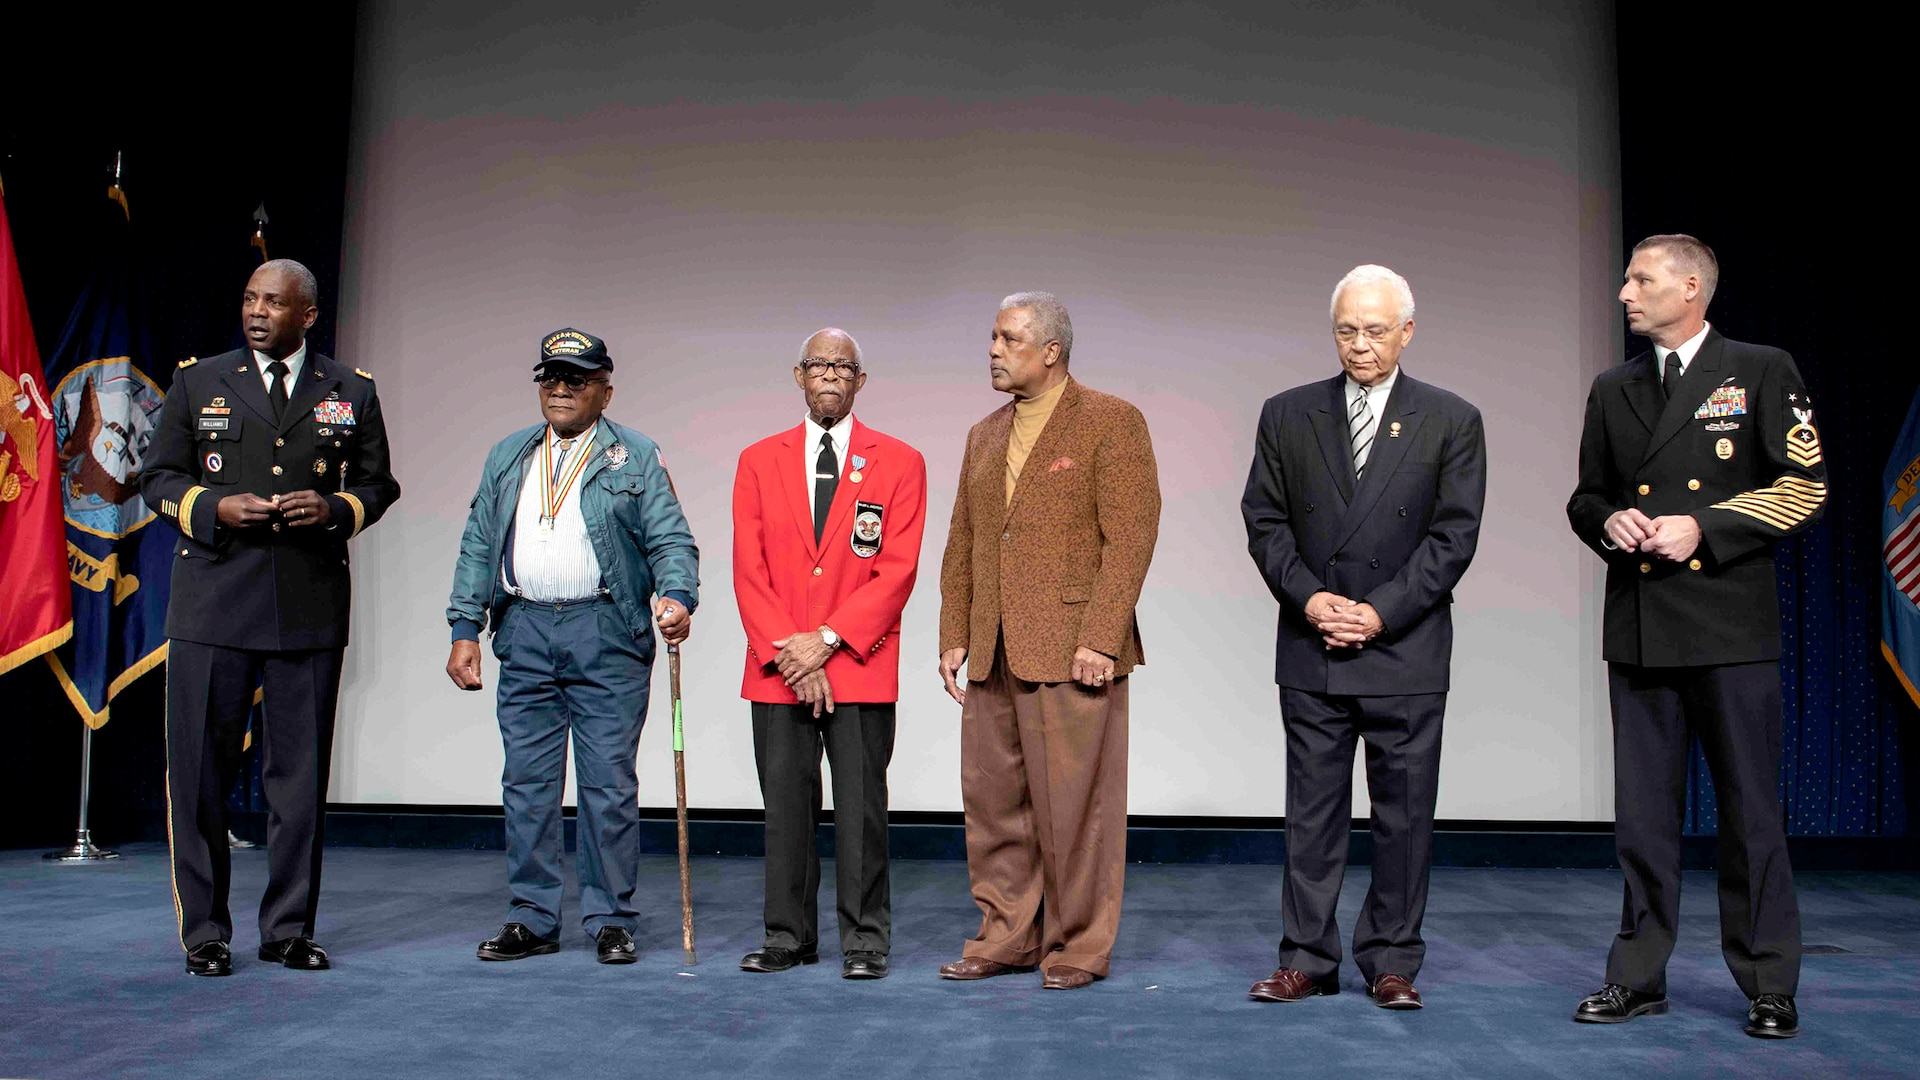 Six men stand on a stage. Man on the far left and far right are in military dress uniform.